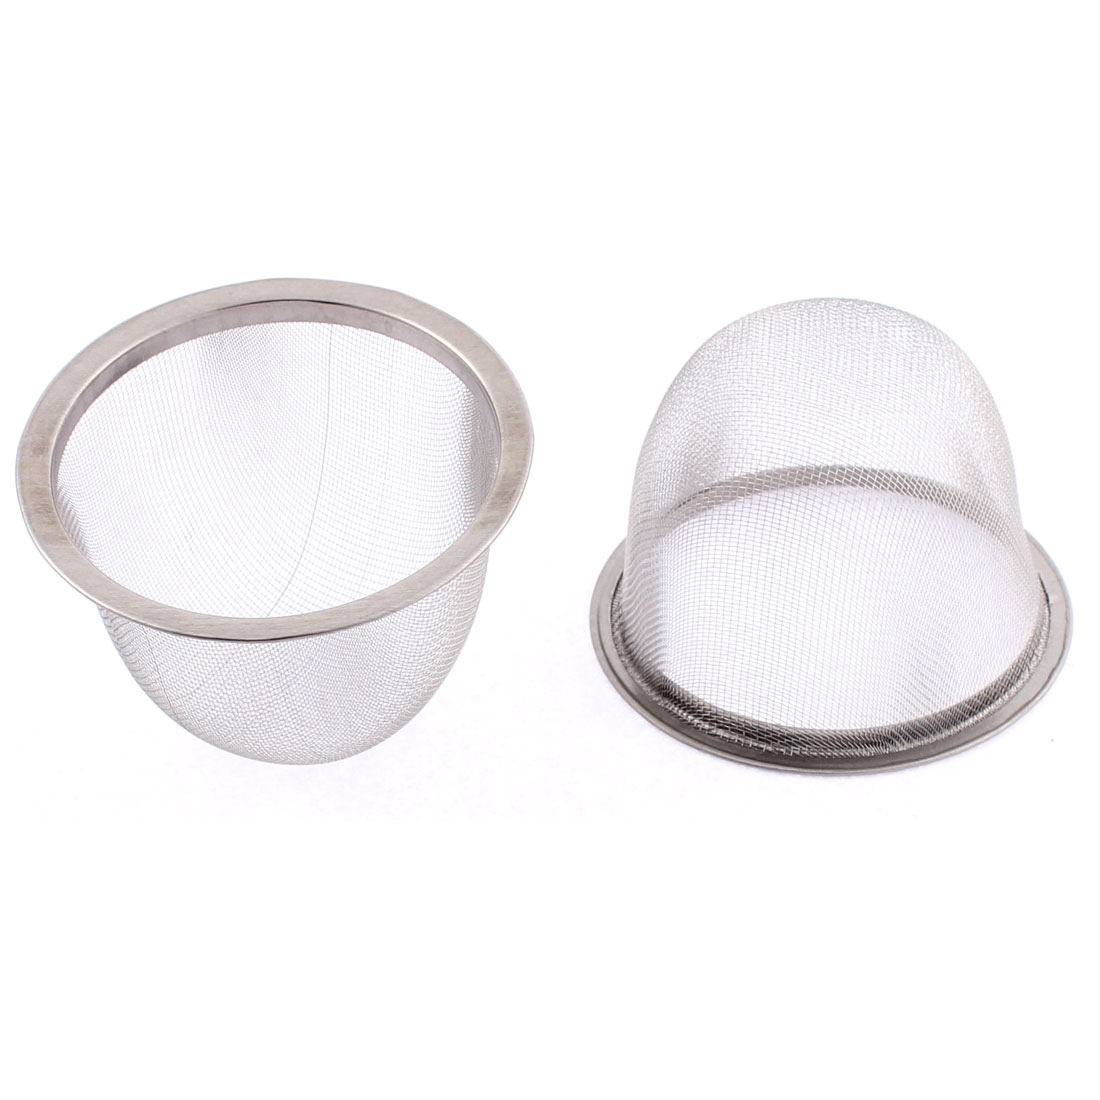 70mm Dia Stainless Steel Wire Mesh Tea Infuser Strainer Basket 2 Pcs